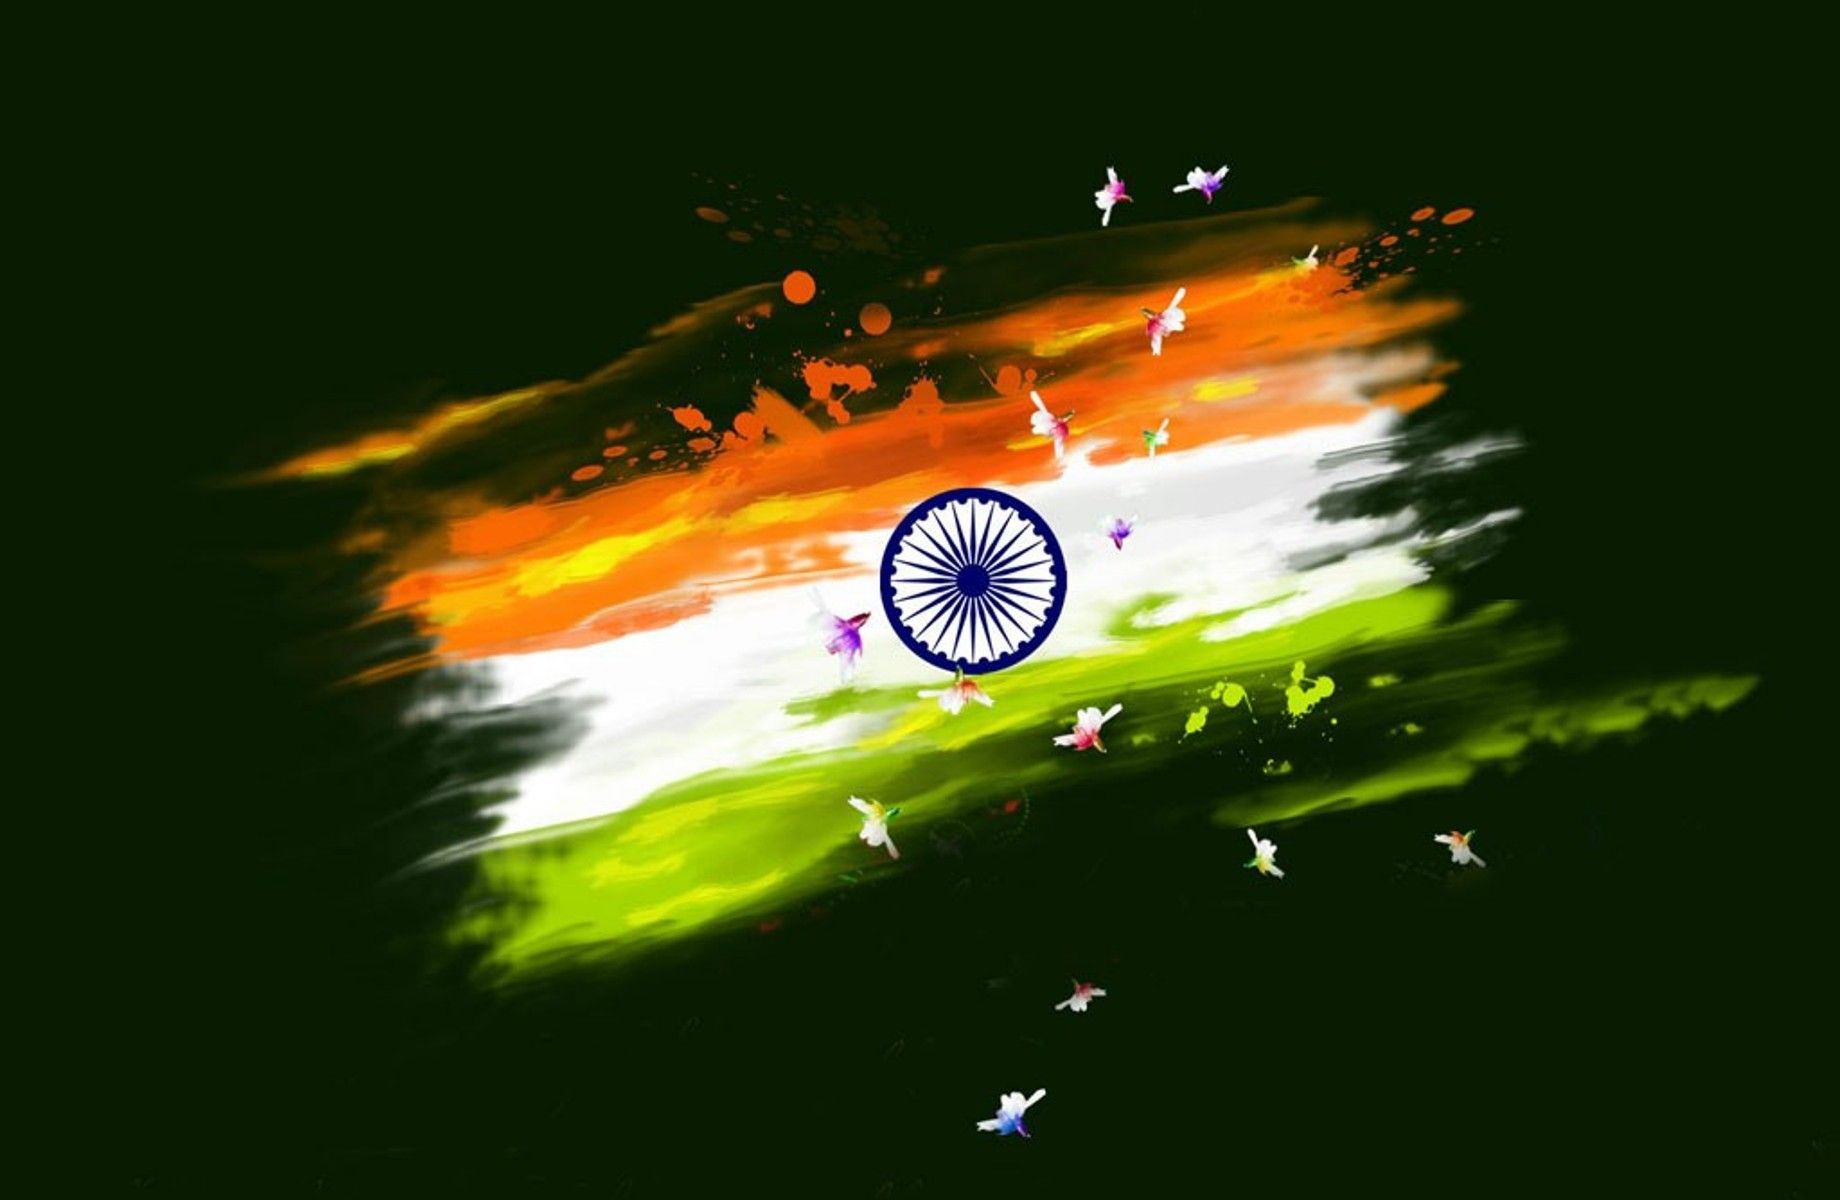 Indian Flag Wallpaper 1080p Life In 2019 Indian Flag Indian